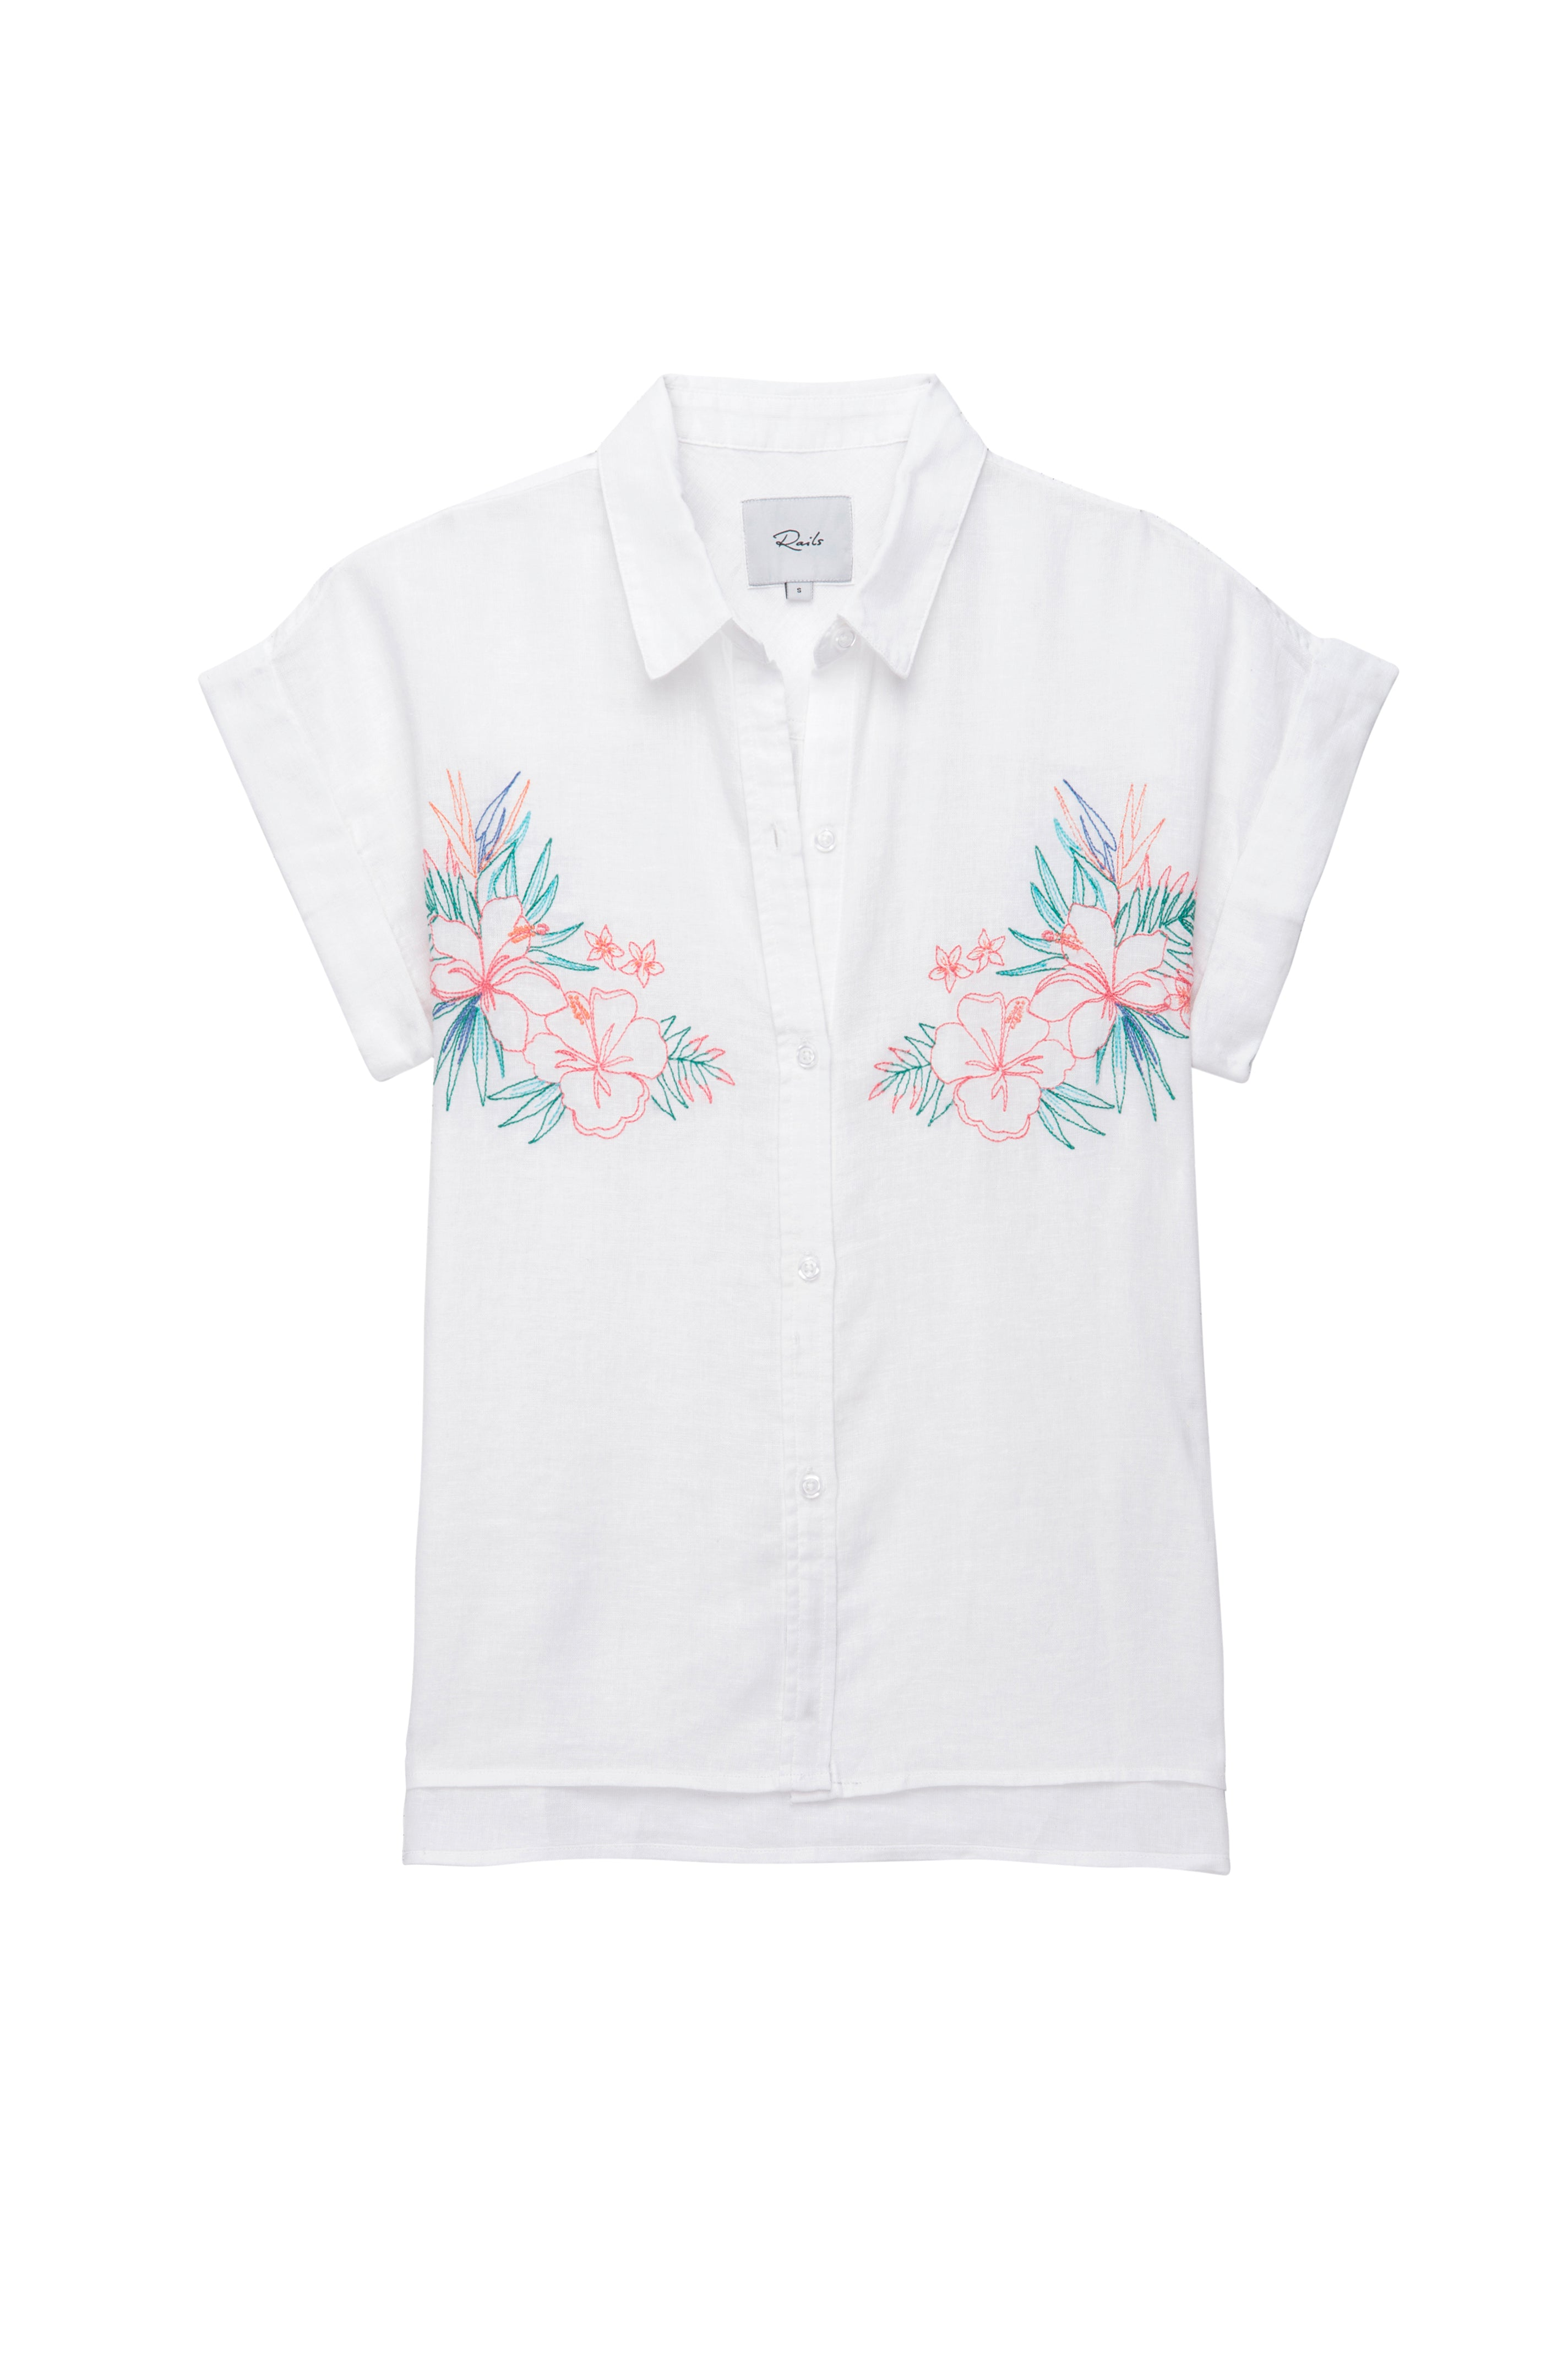 Whitney White Embroidery shirt